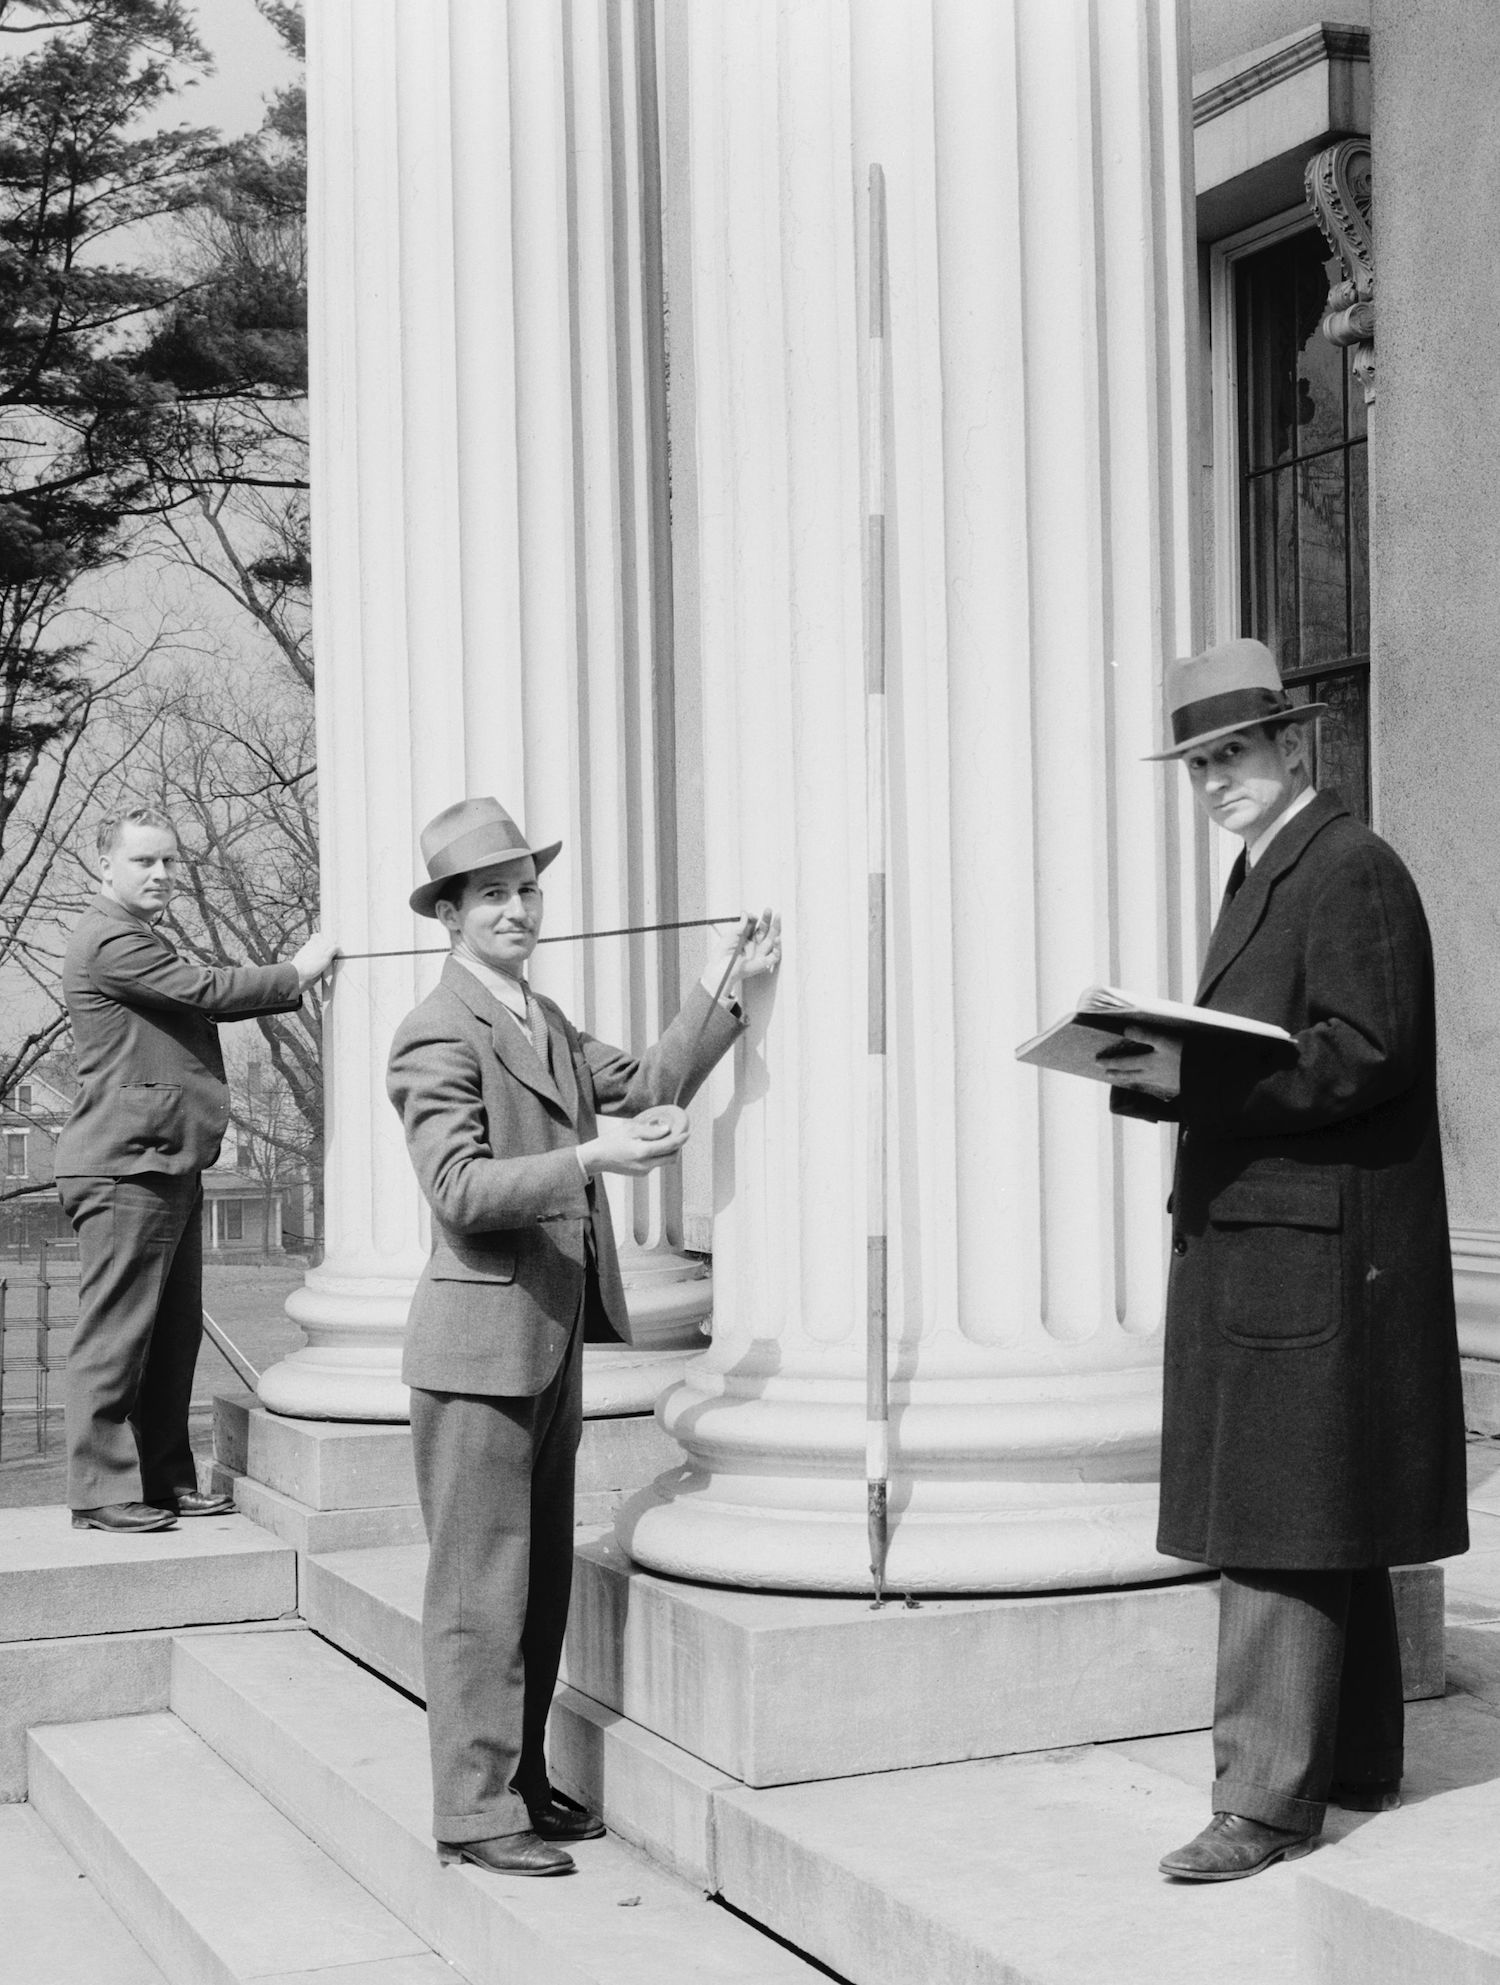 HABS team in 1934 measuring the Kentucky School for the Blind. Source via Library of Congress.